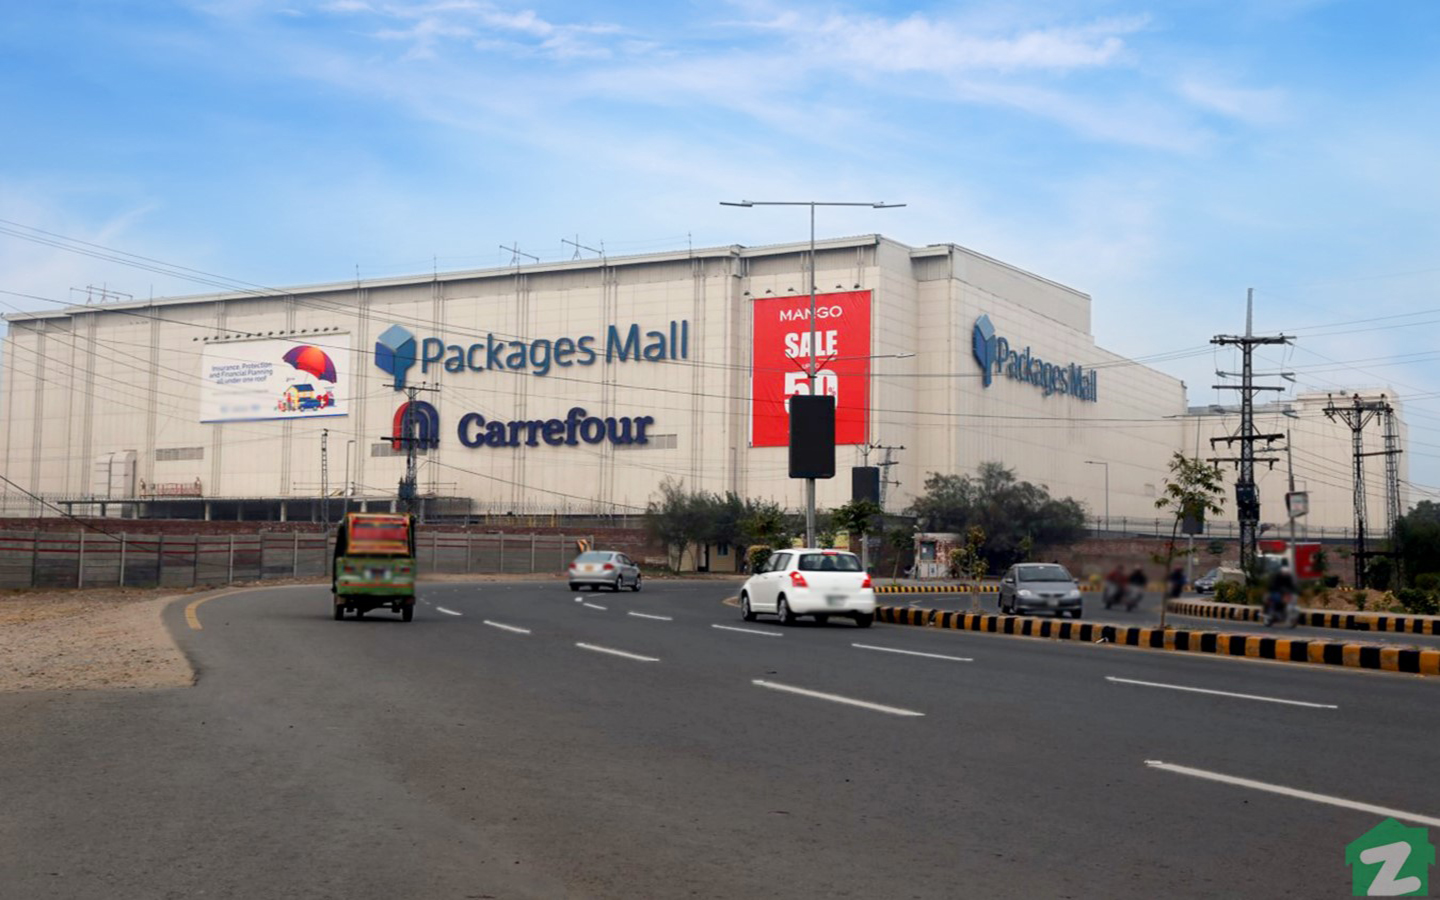 Residents of the town can also shop from Packages Mall